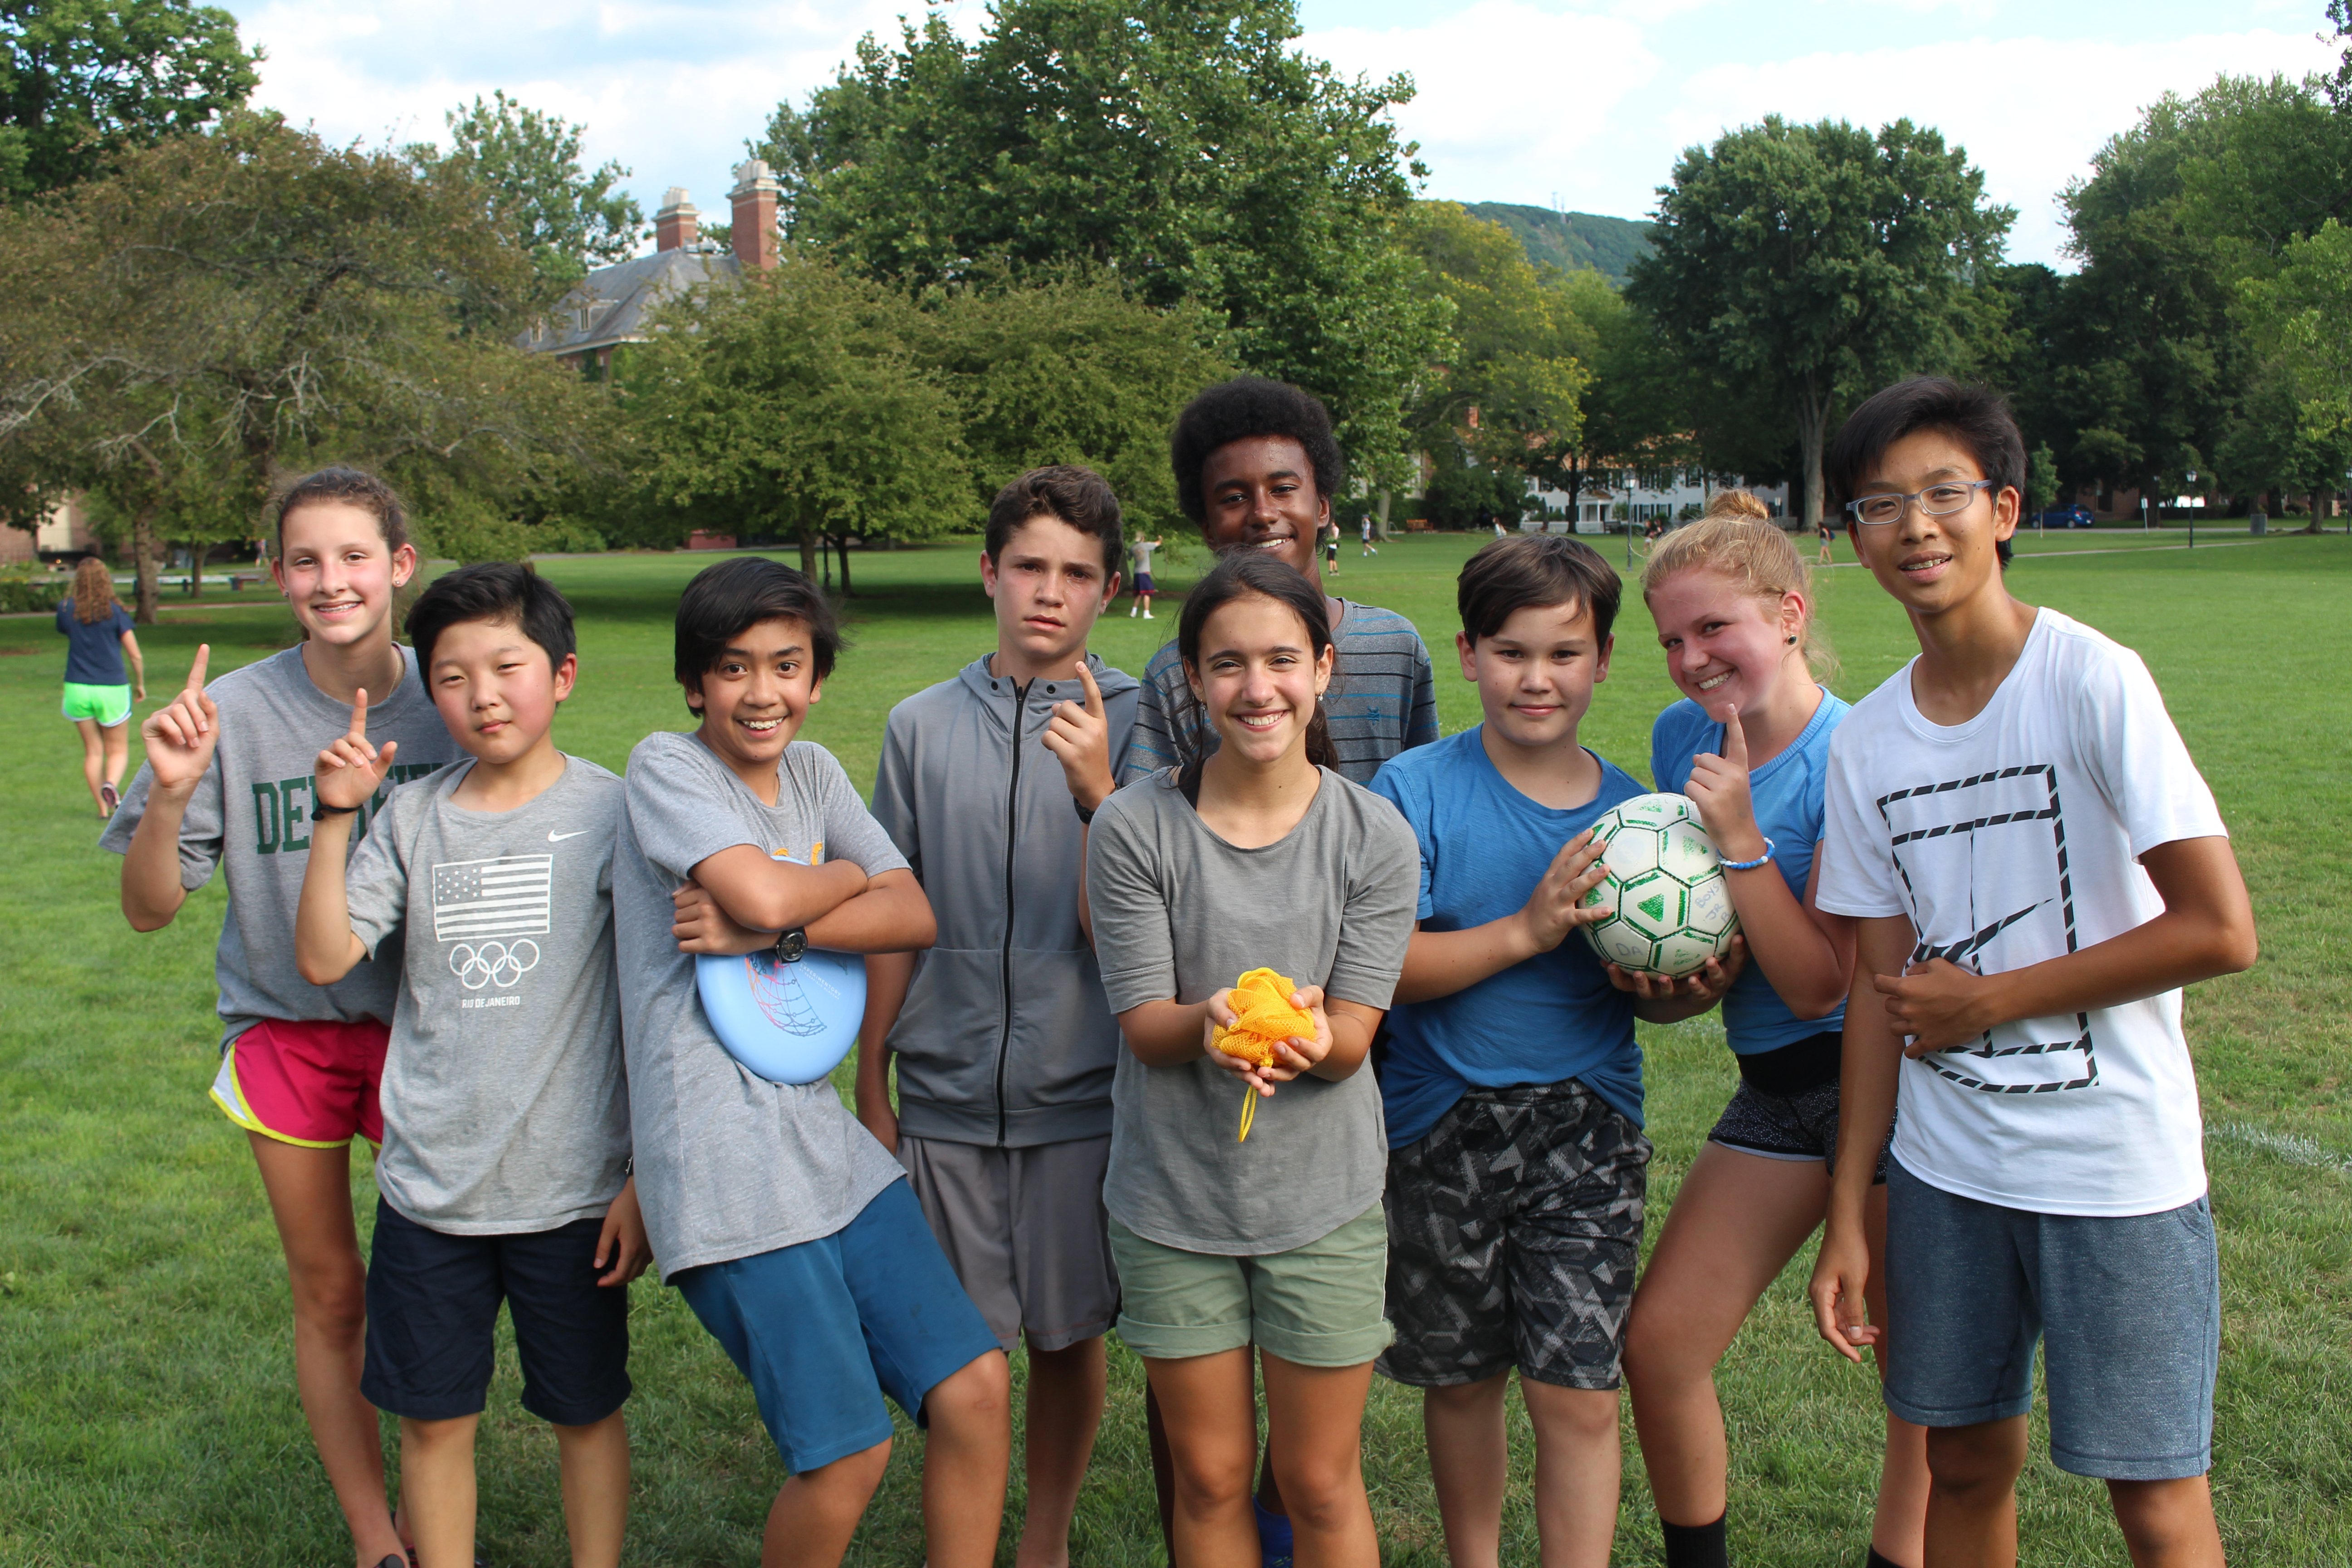 Summer Program - Middle School | The Experimentory at Deerfield Academy for Middle School Students